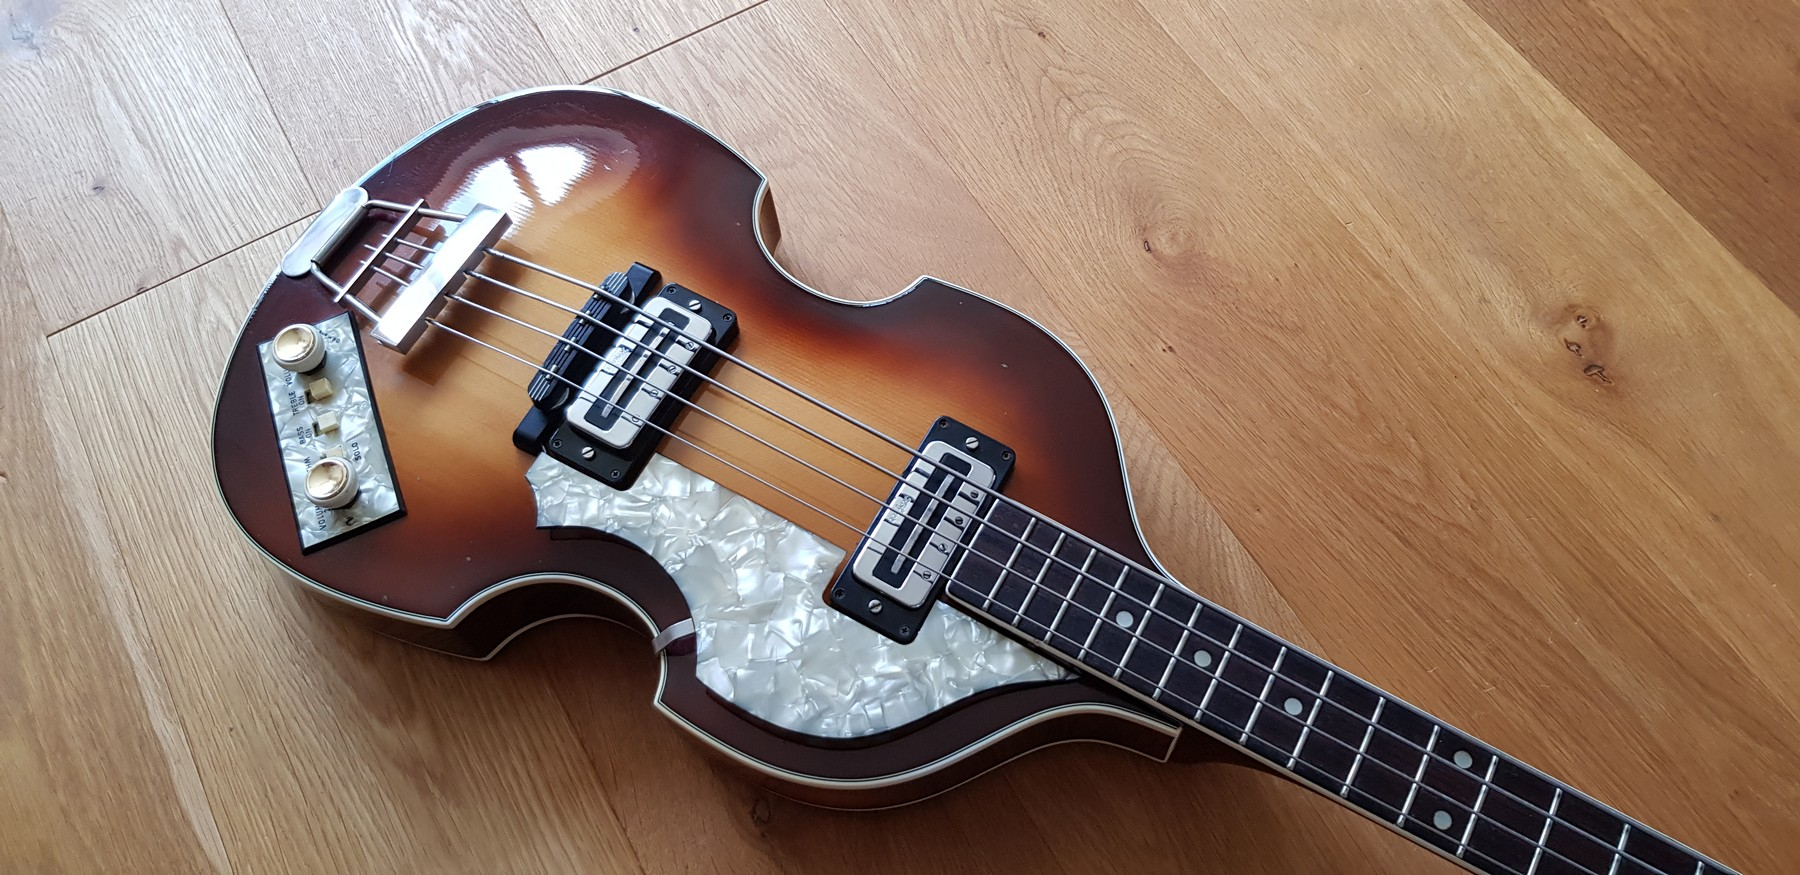 hofner violin bass made in germany circa 1966 classic cool guitars. Black Bedroom Furniture Sets. Home Design Ideas